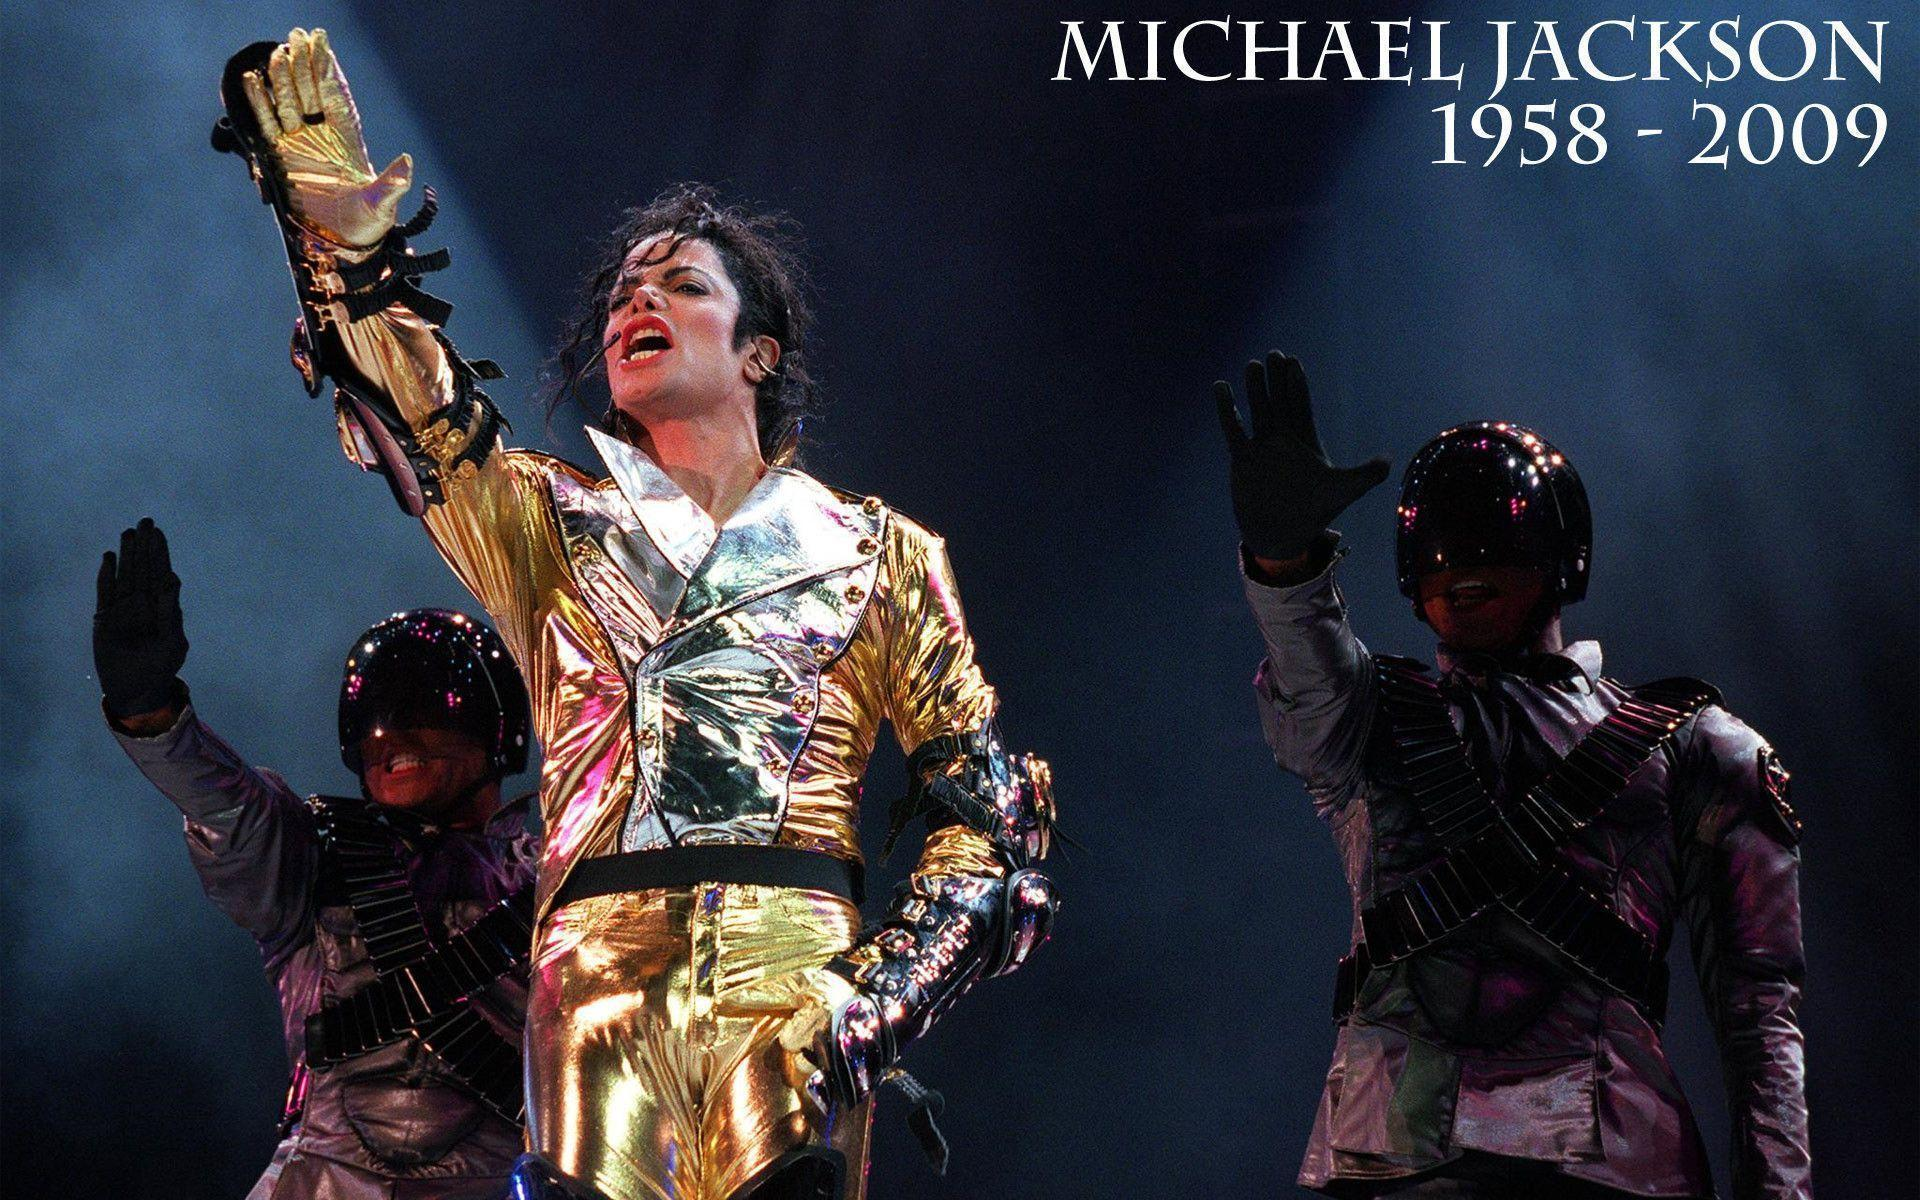 Michael Jackson Wallpapers - Full HD wallpaper search - page 8